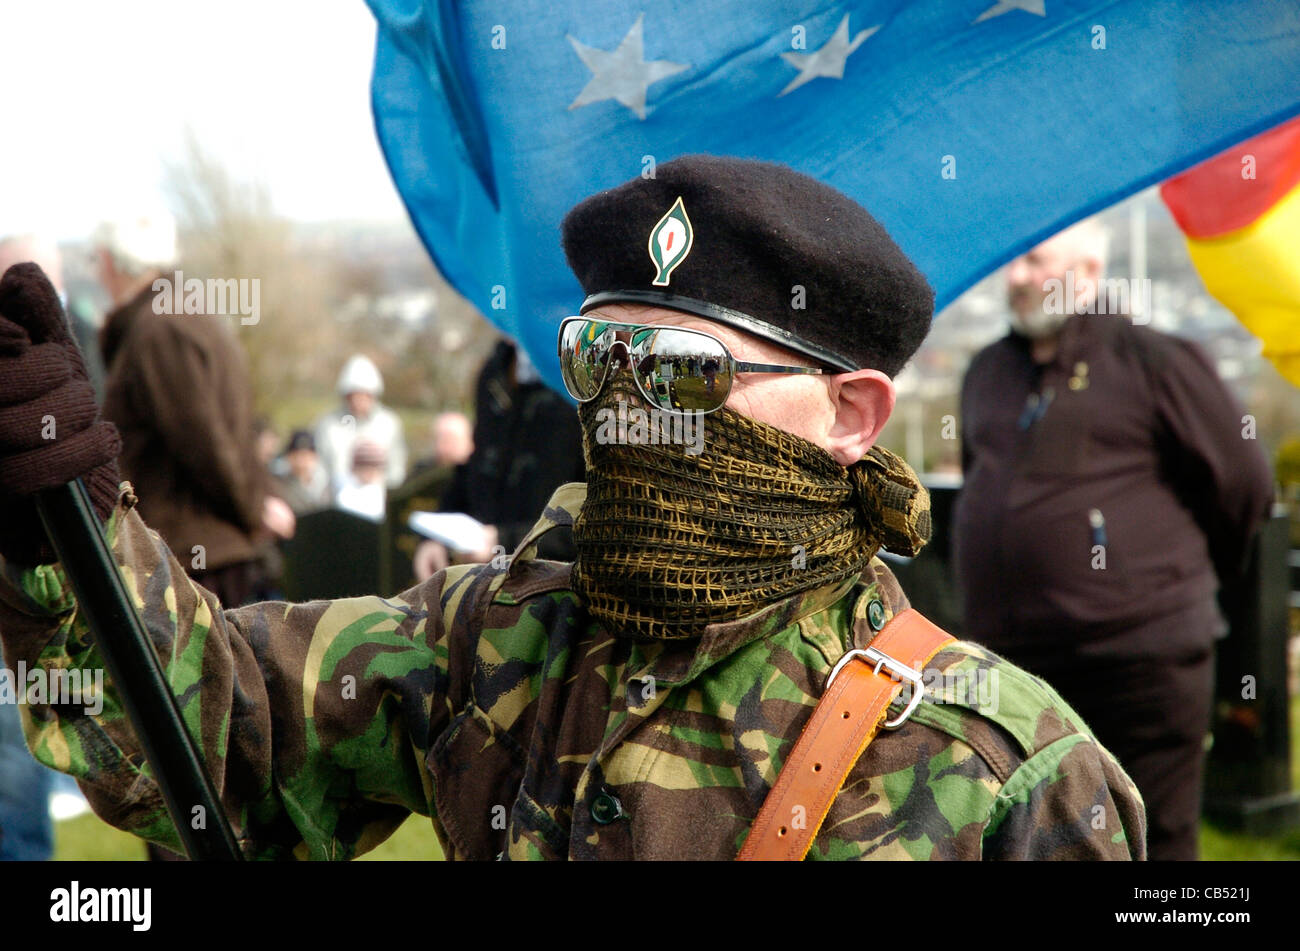 Member of the Real IRA attending 1916 Easter Rising commemoration in Londonderry, Northern Ireland. - Stock Image